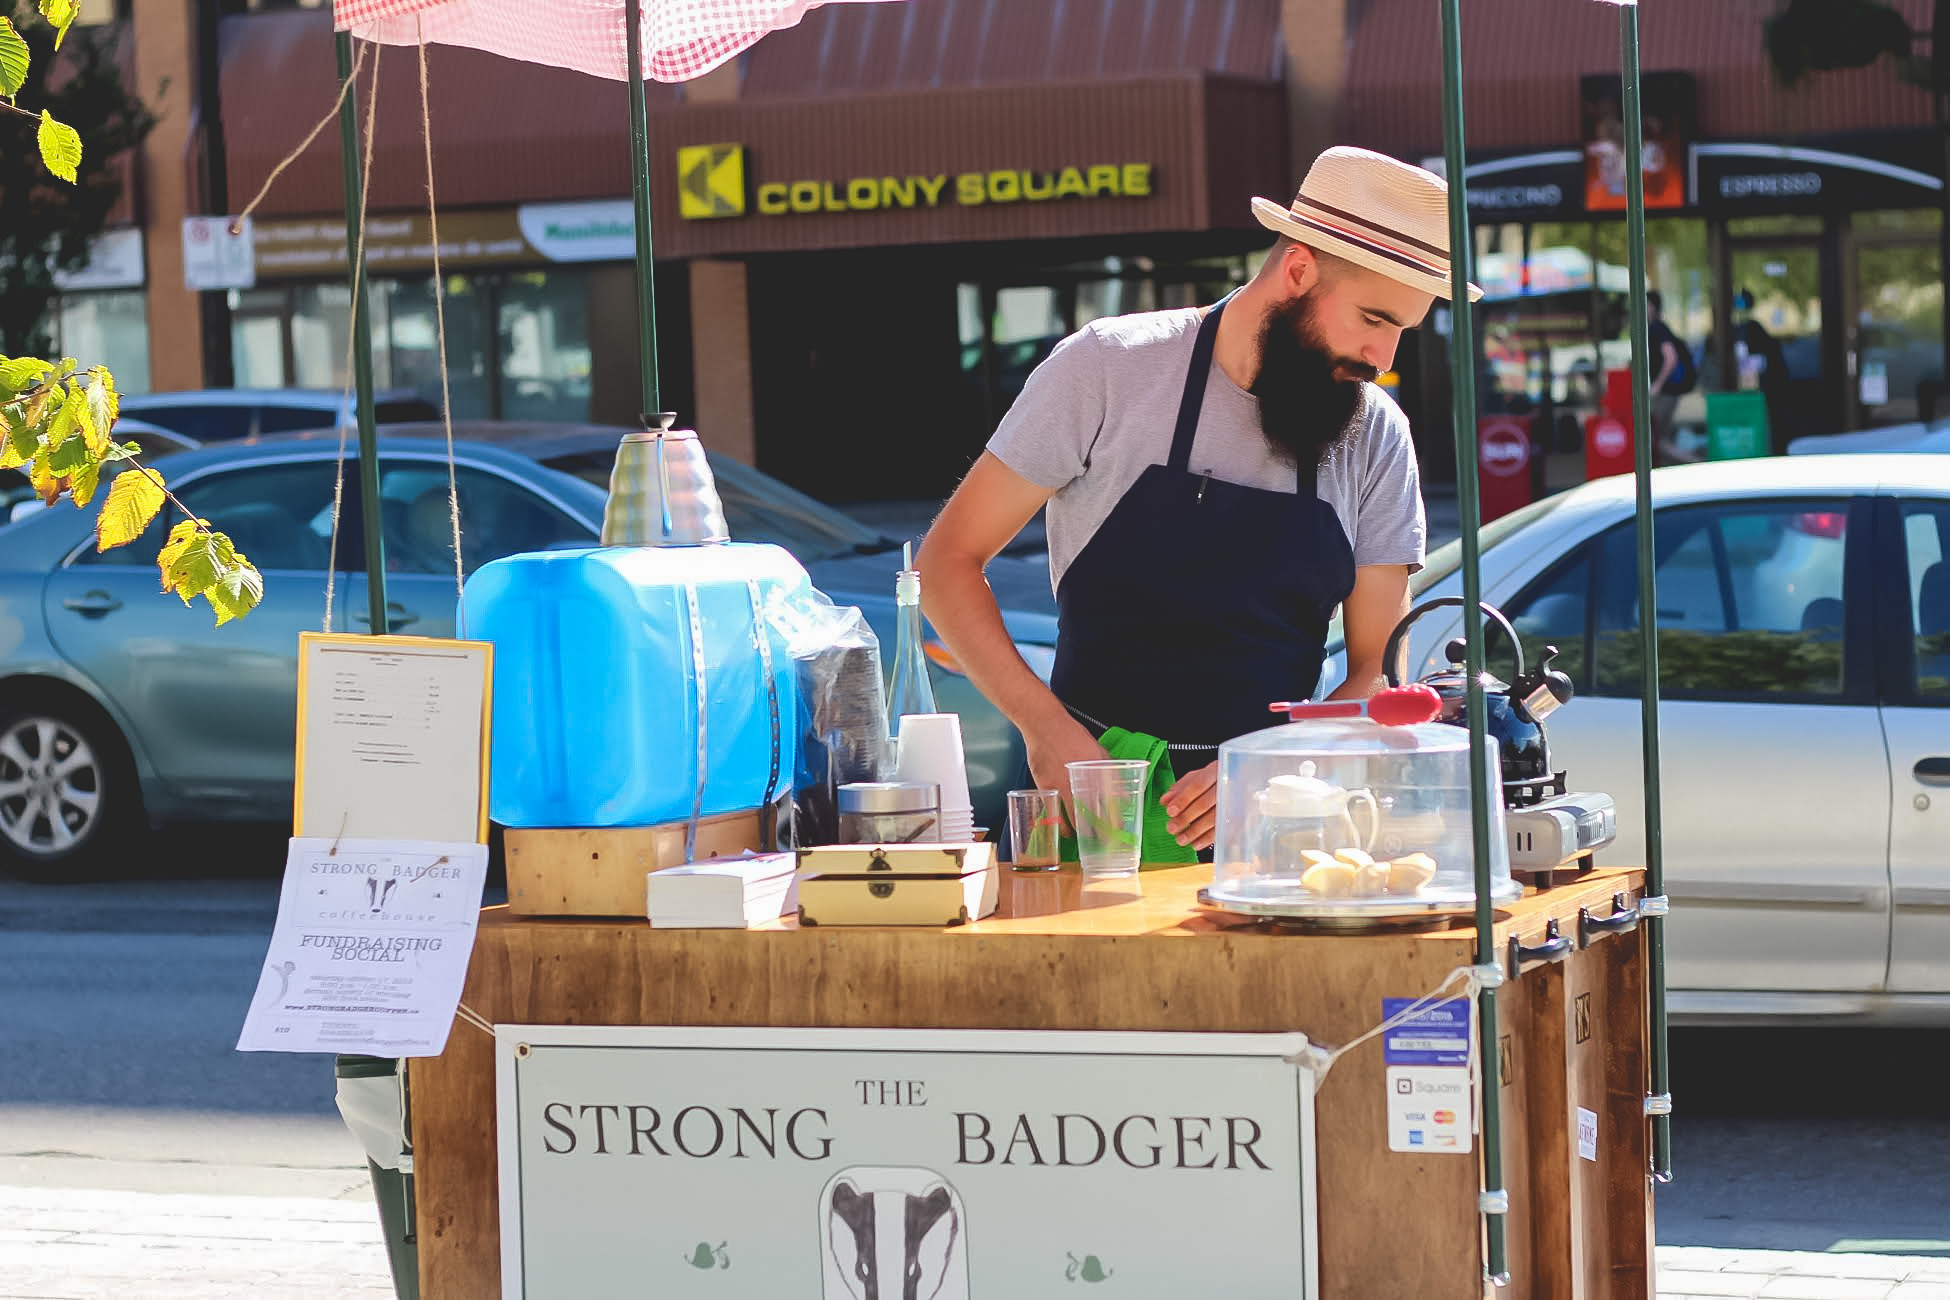 Badger digs into downtown